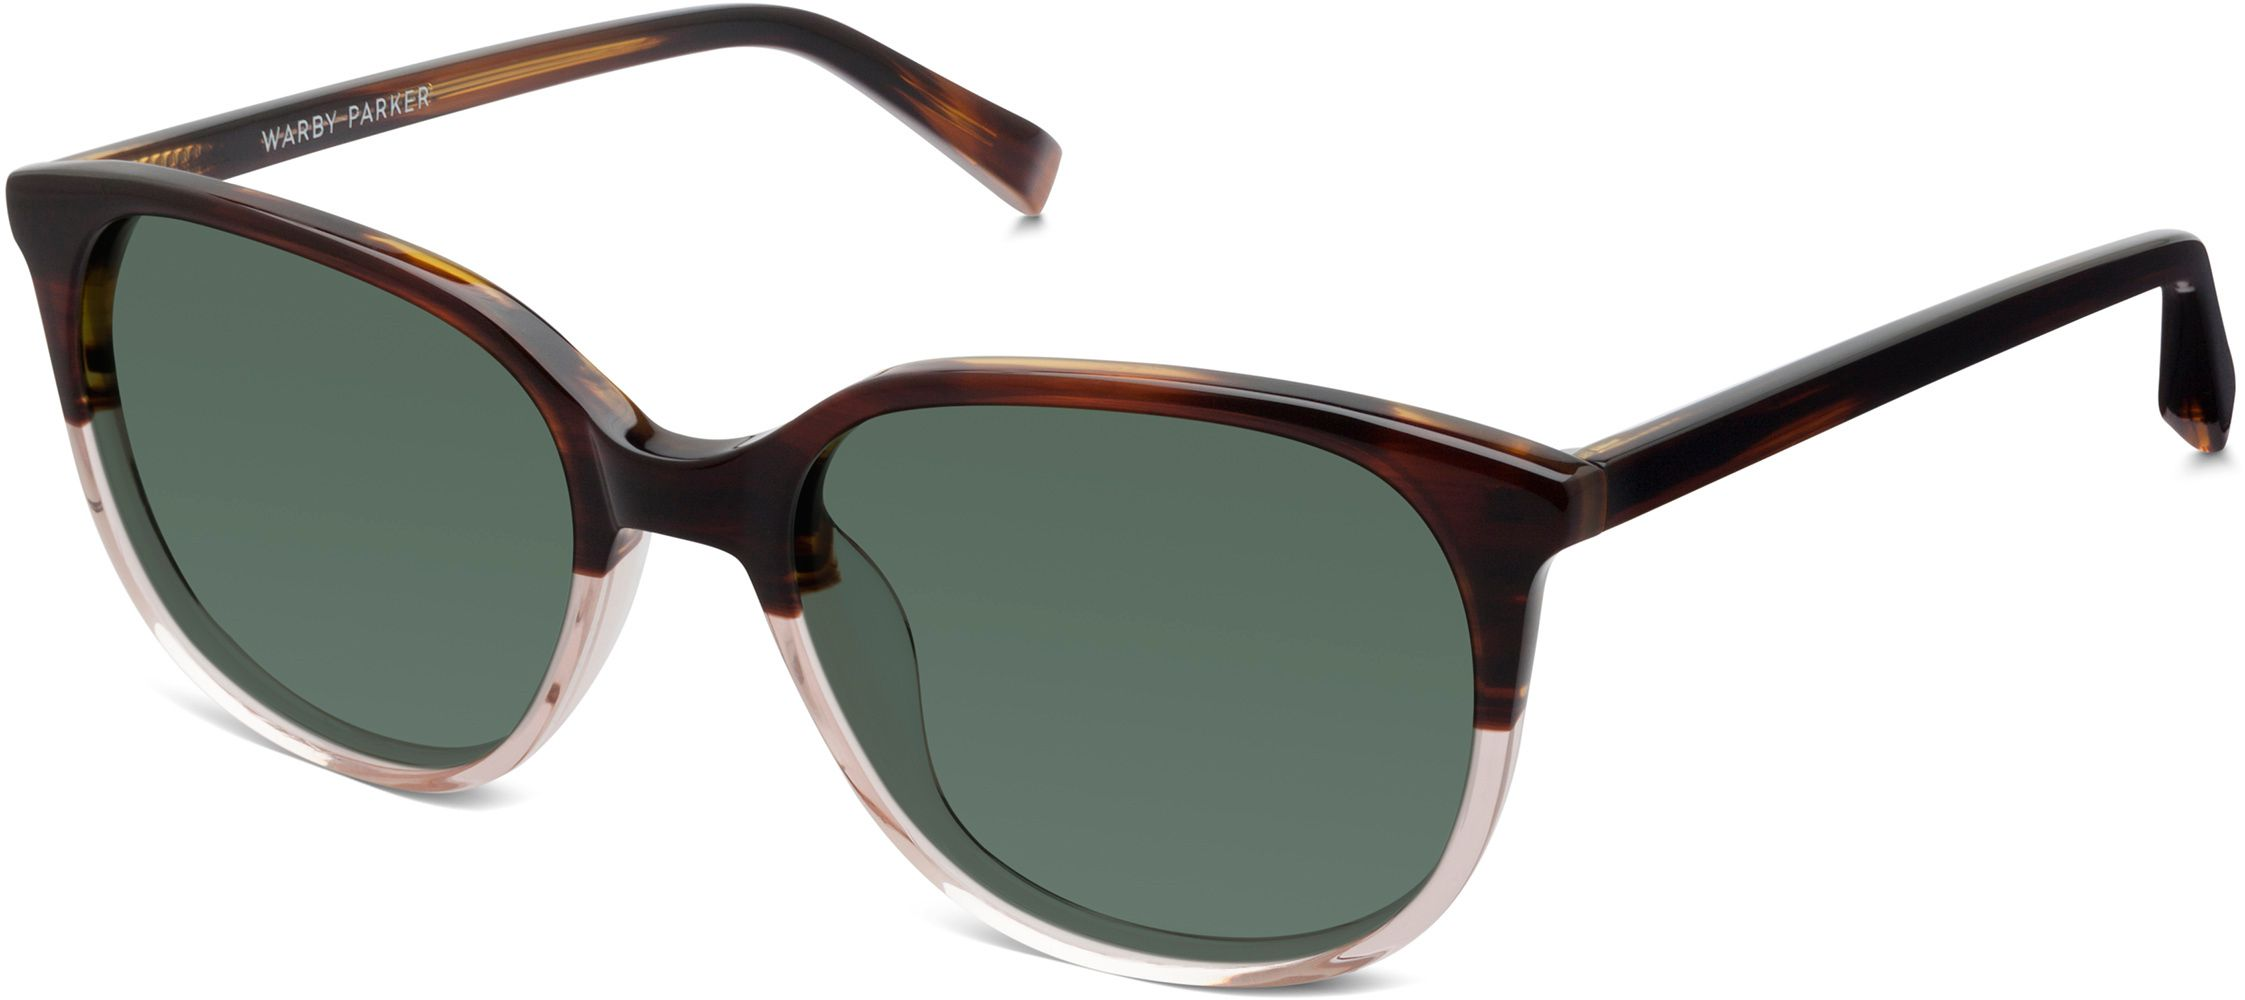 137a5960e9 Laurel Sunglasses in Tea Rose Fade with Green Grey lenses for Women ...